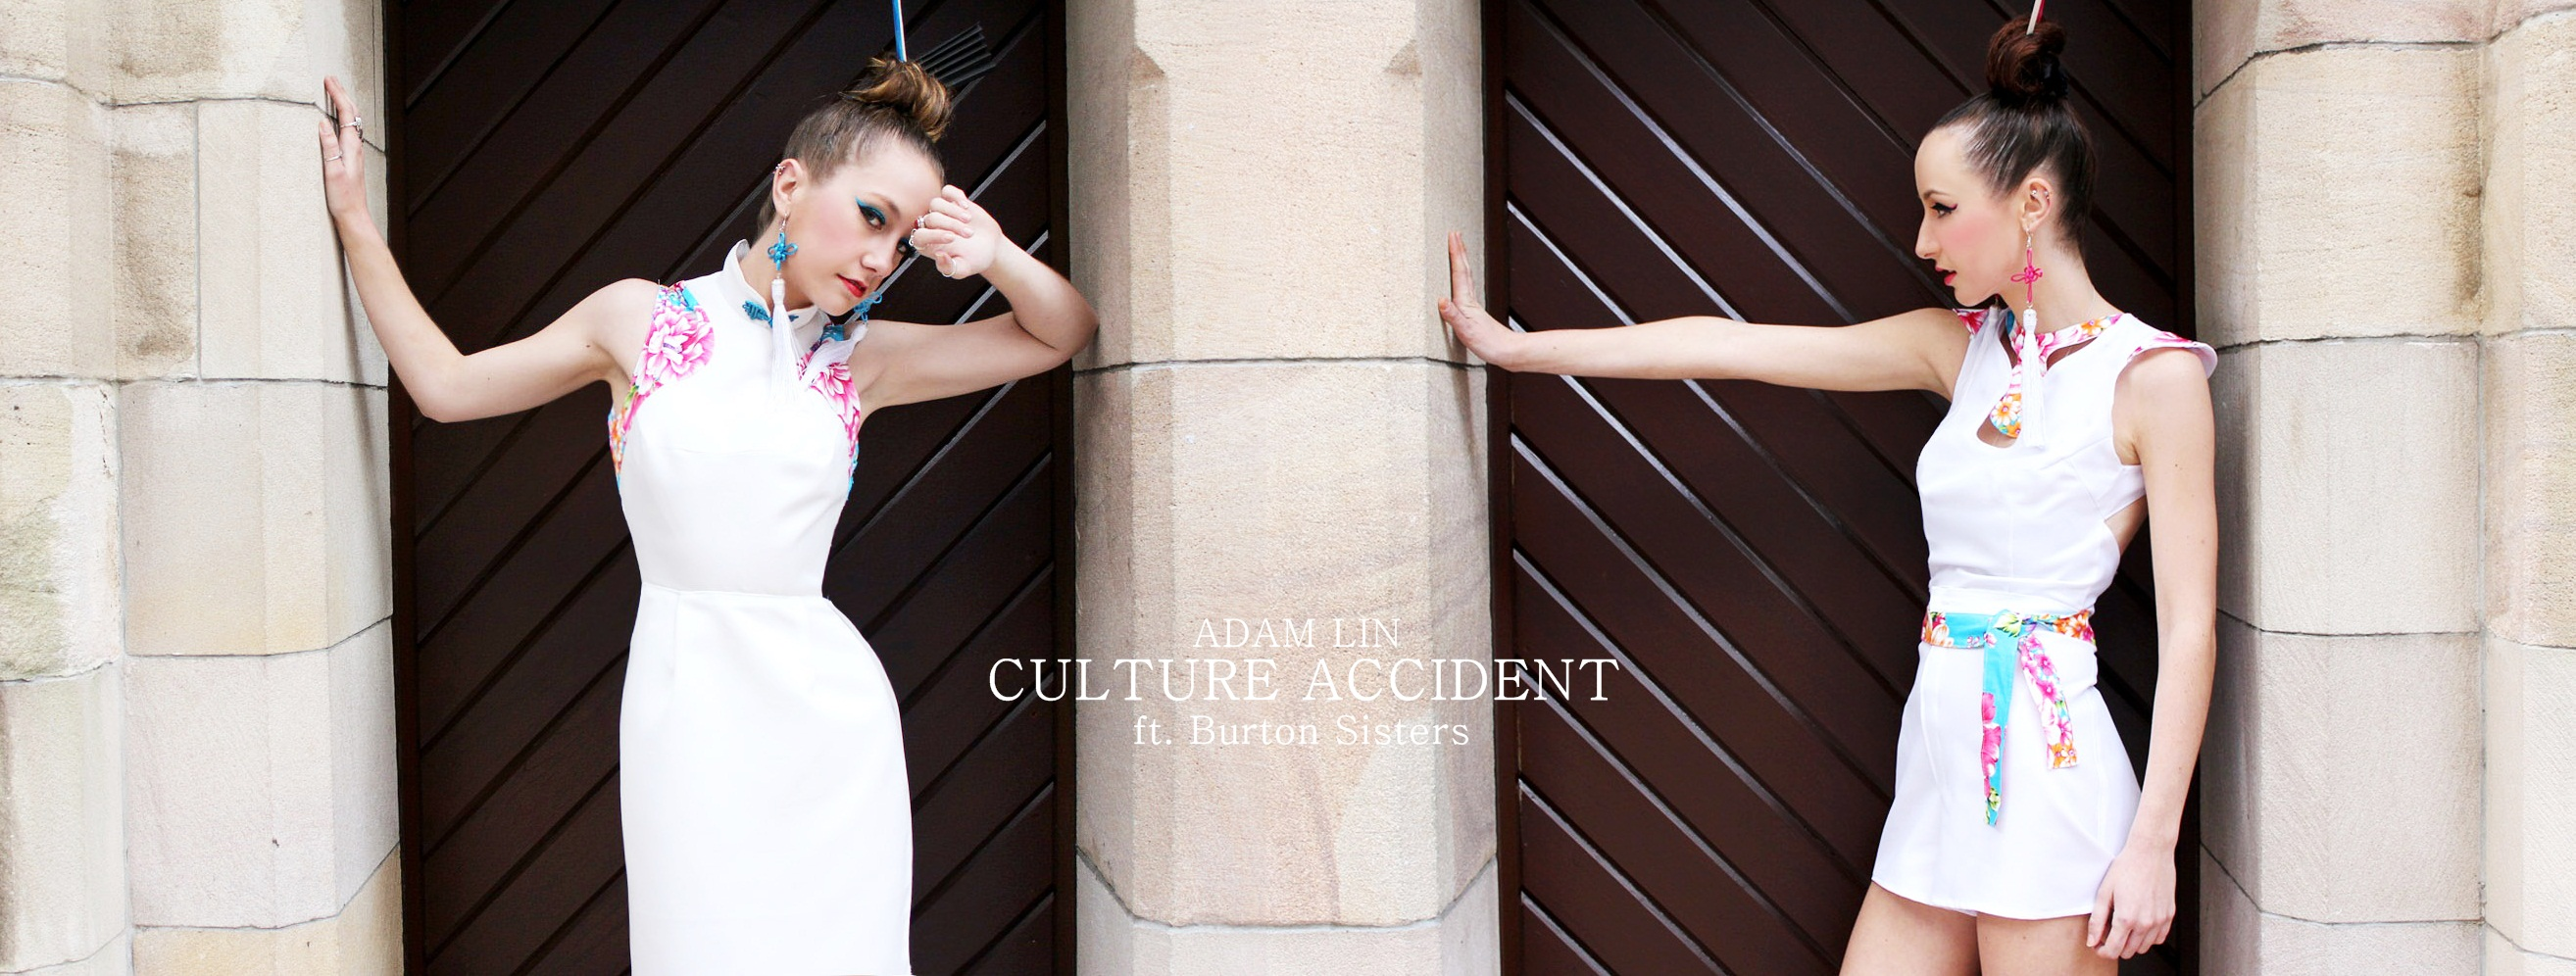 SS12 CULTURE ACCIDENT